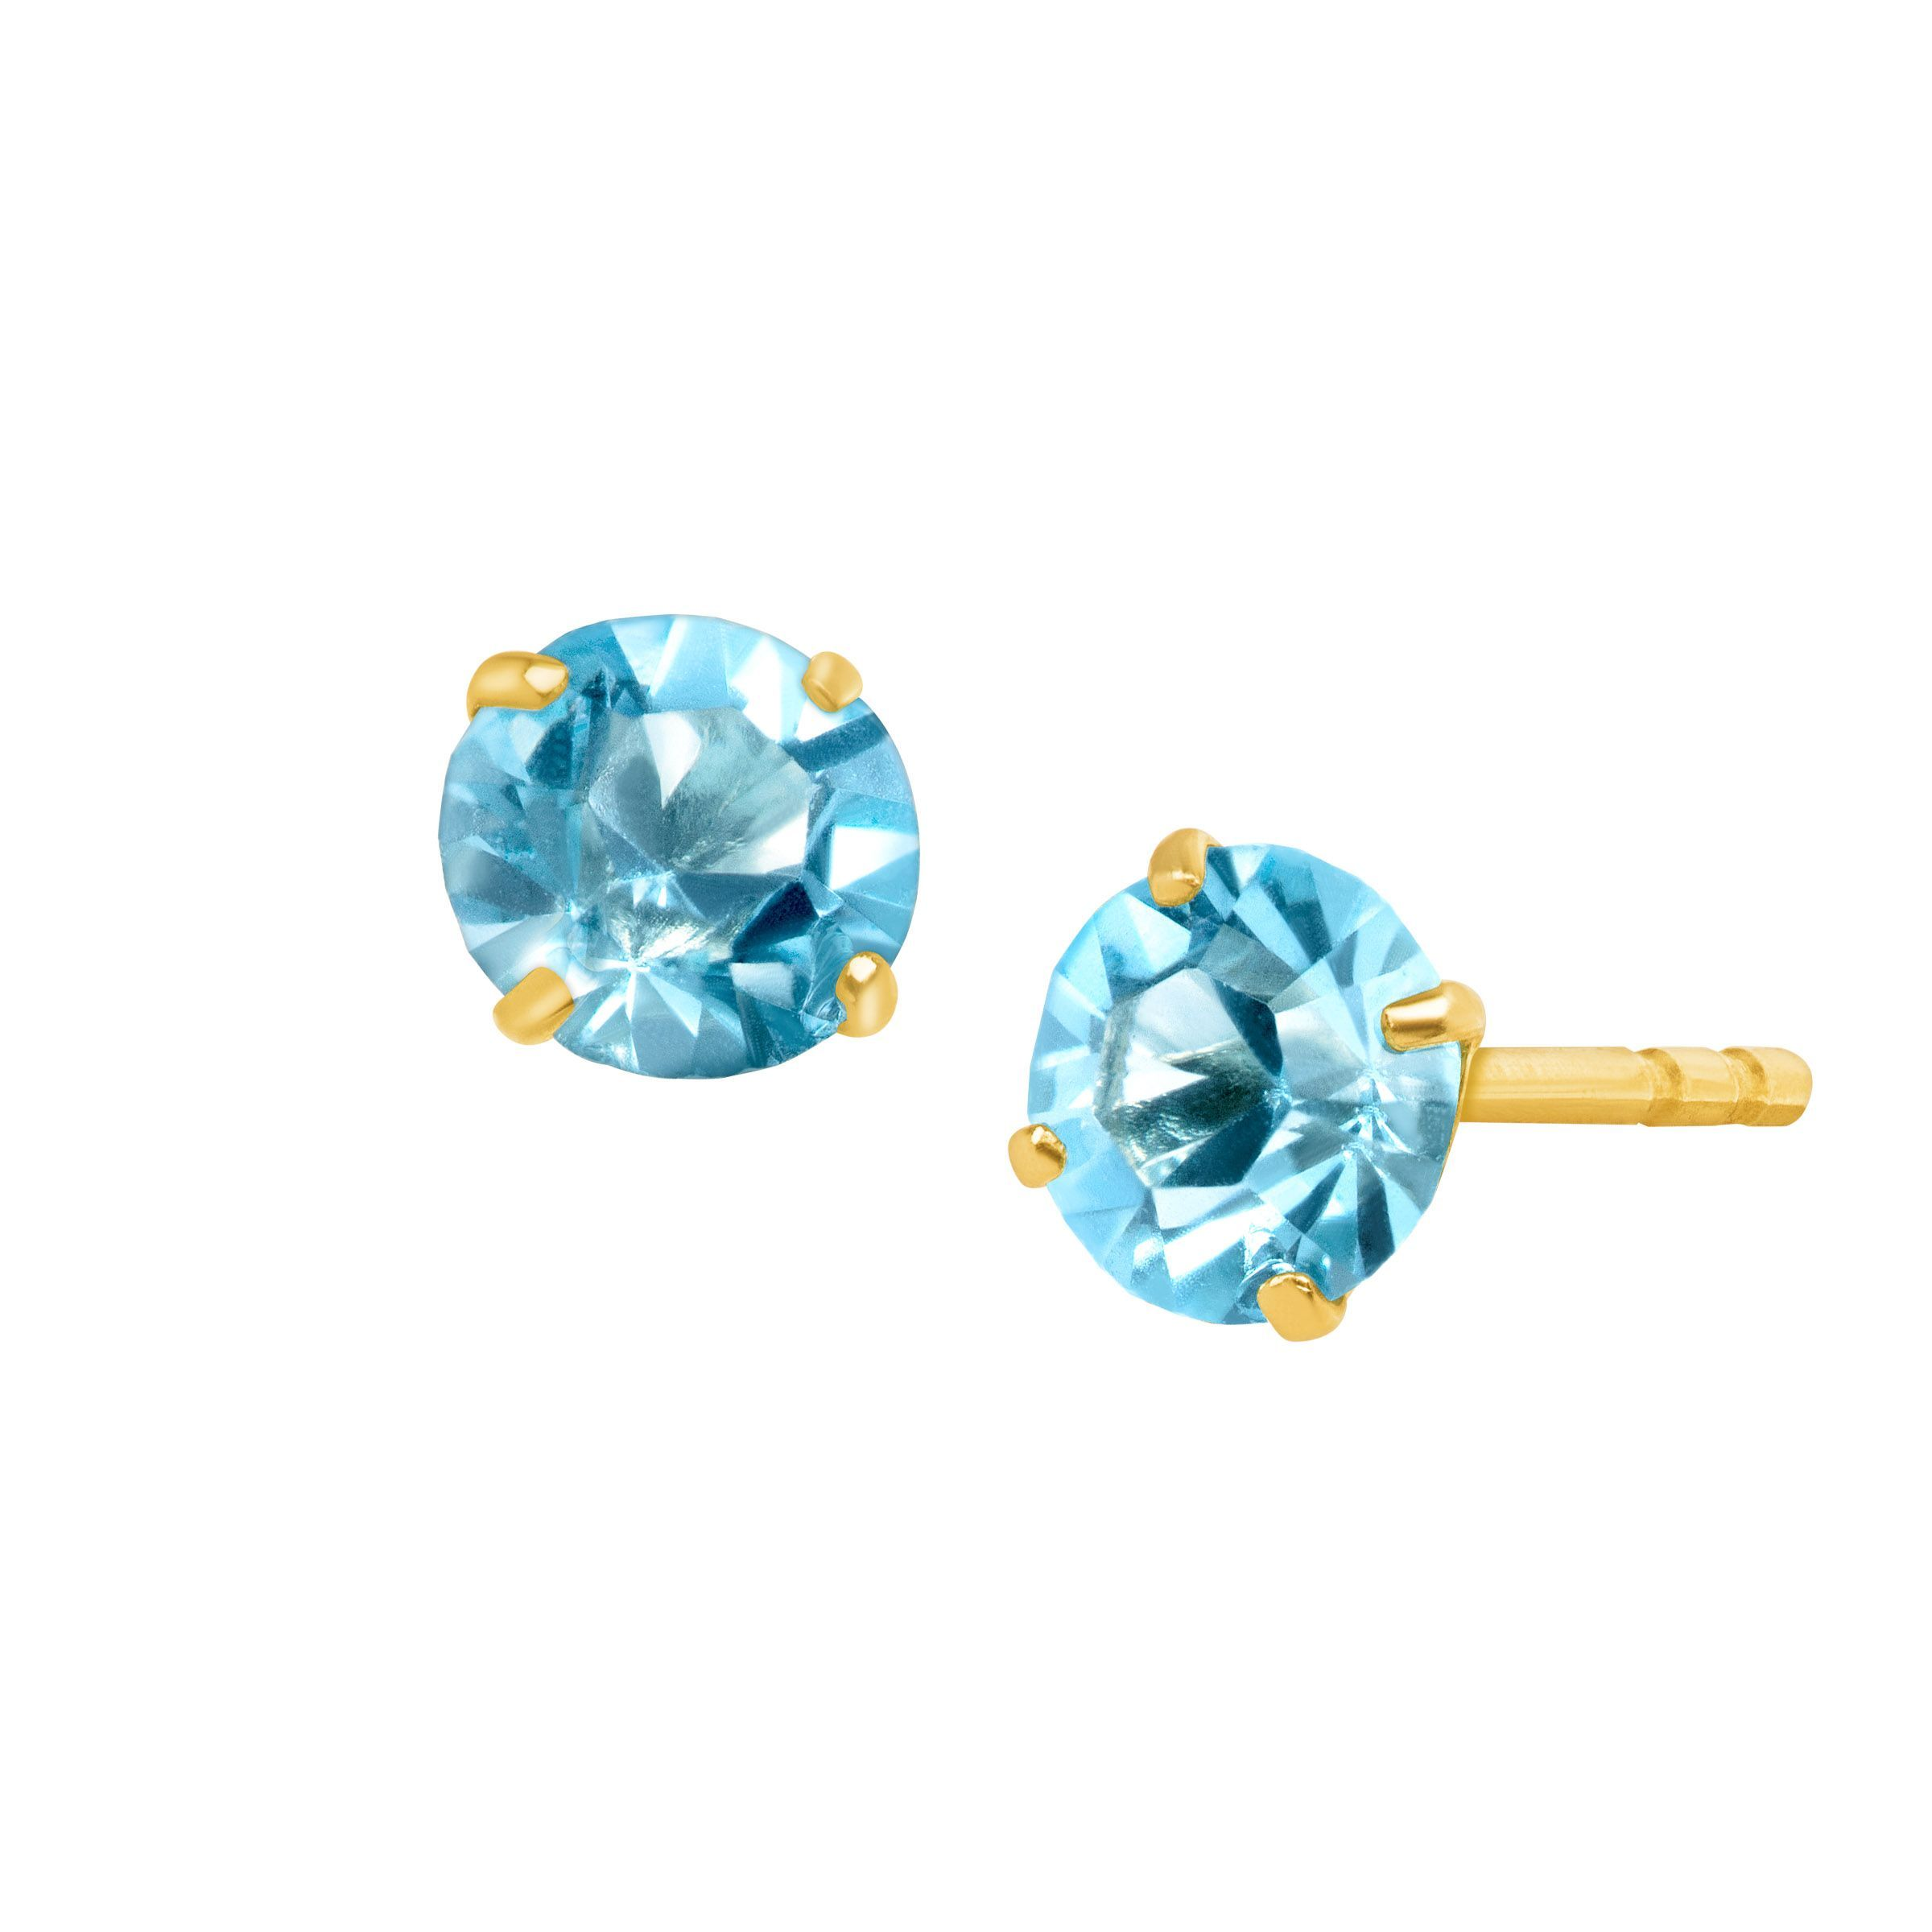 at marine aqua ewa pdp earrings buyewa white lewis rsp com gold online main stud john aquamarine johnlewis